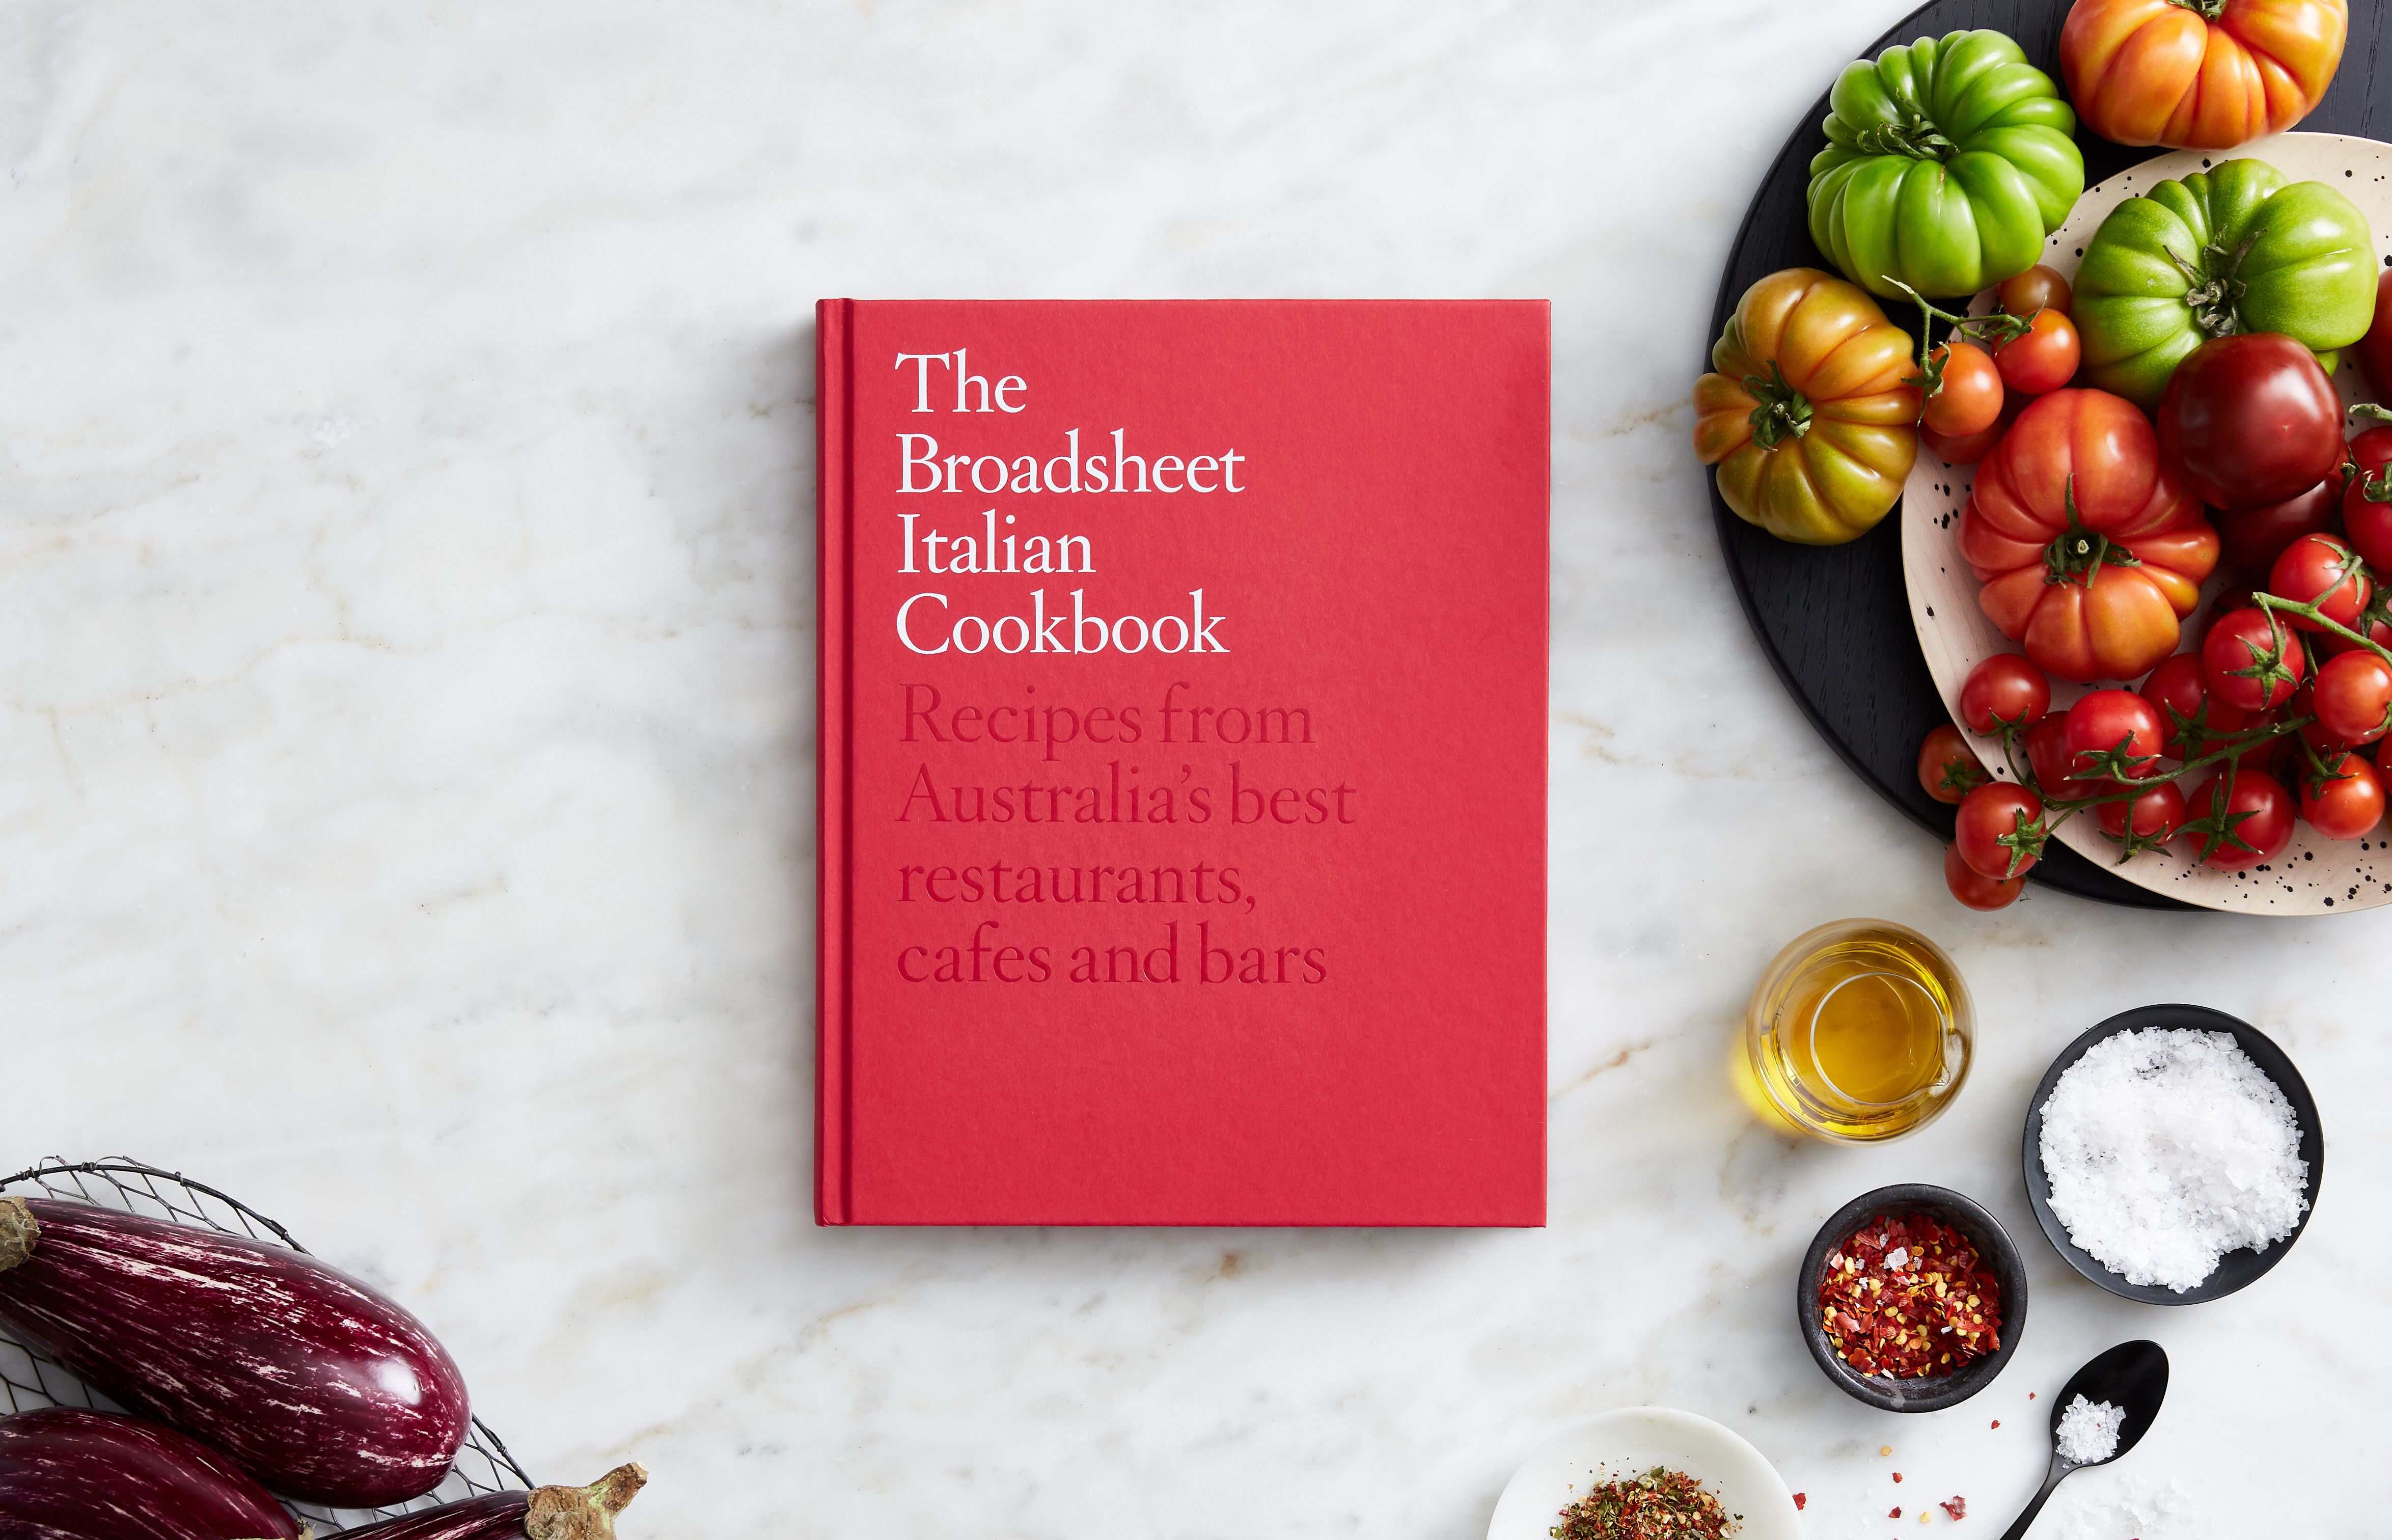 October 2018 – The Broadsheet Italian Cookbook goes on sale | Photography by Peter Marko